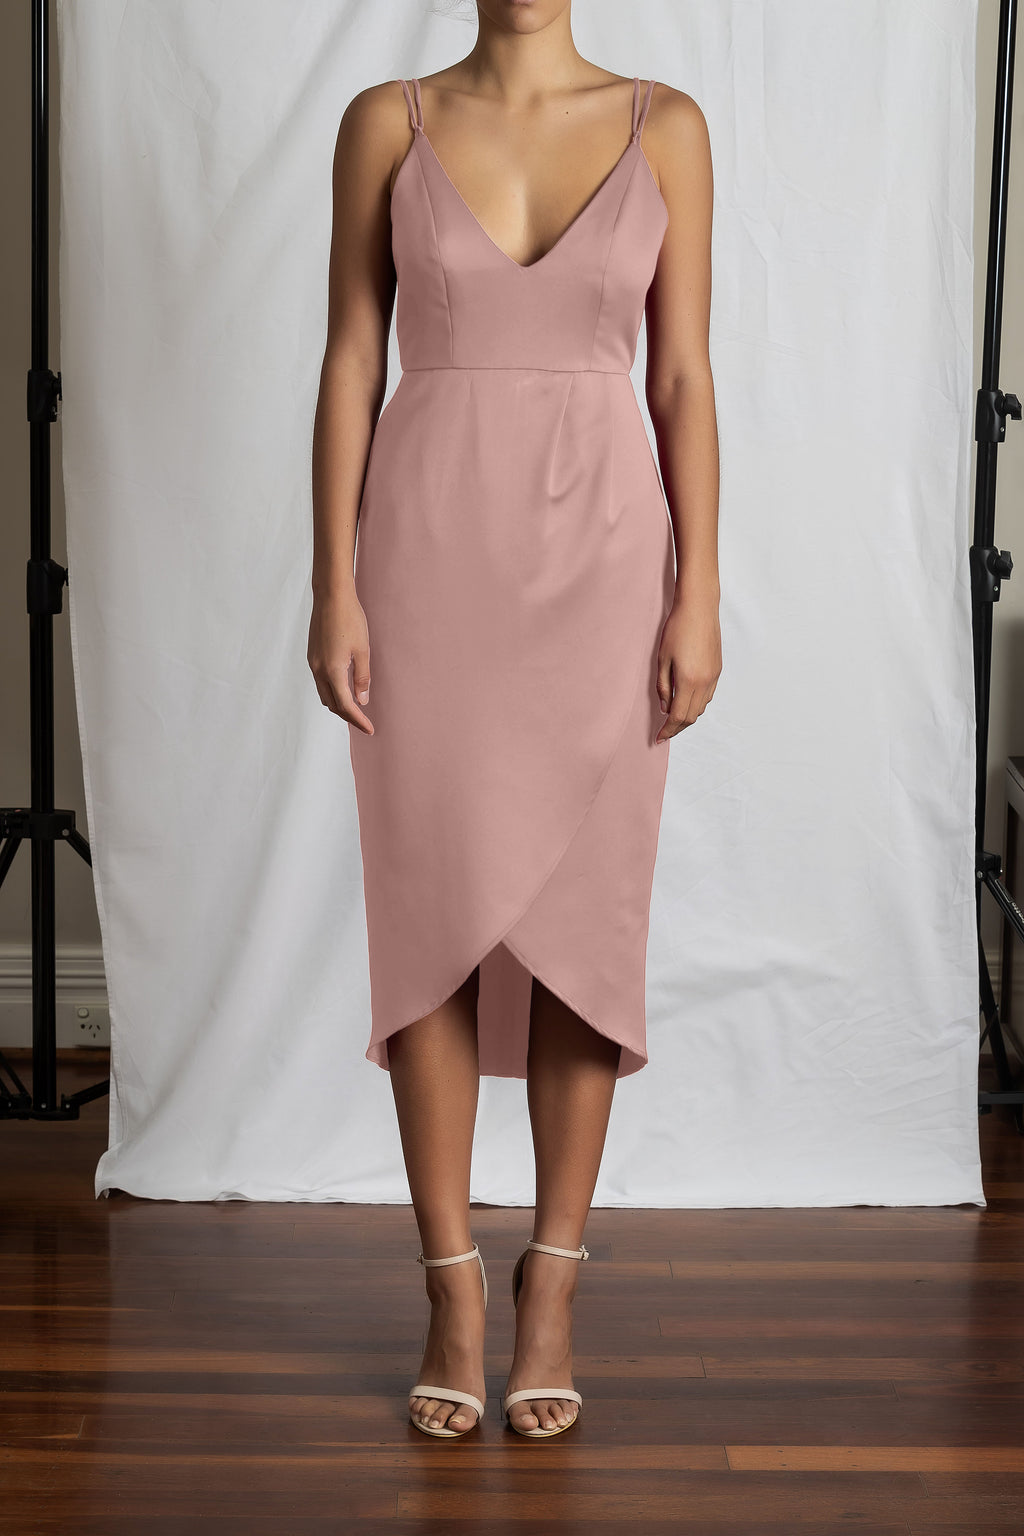 Alyssa Drape Dress - Dusty Pink Duchess Satin